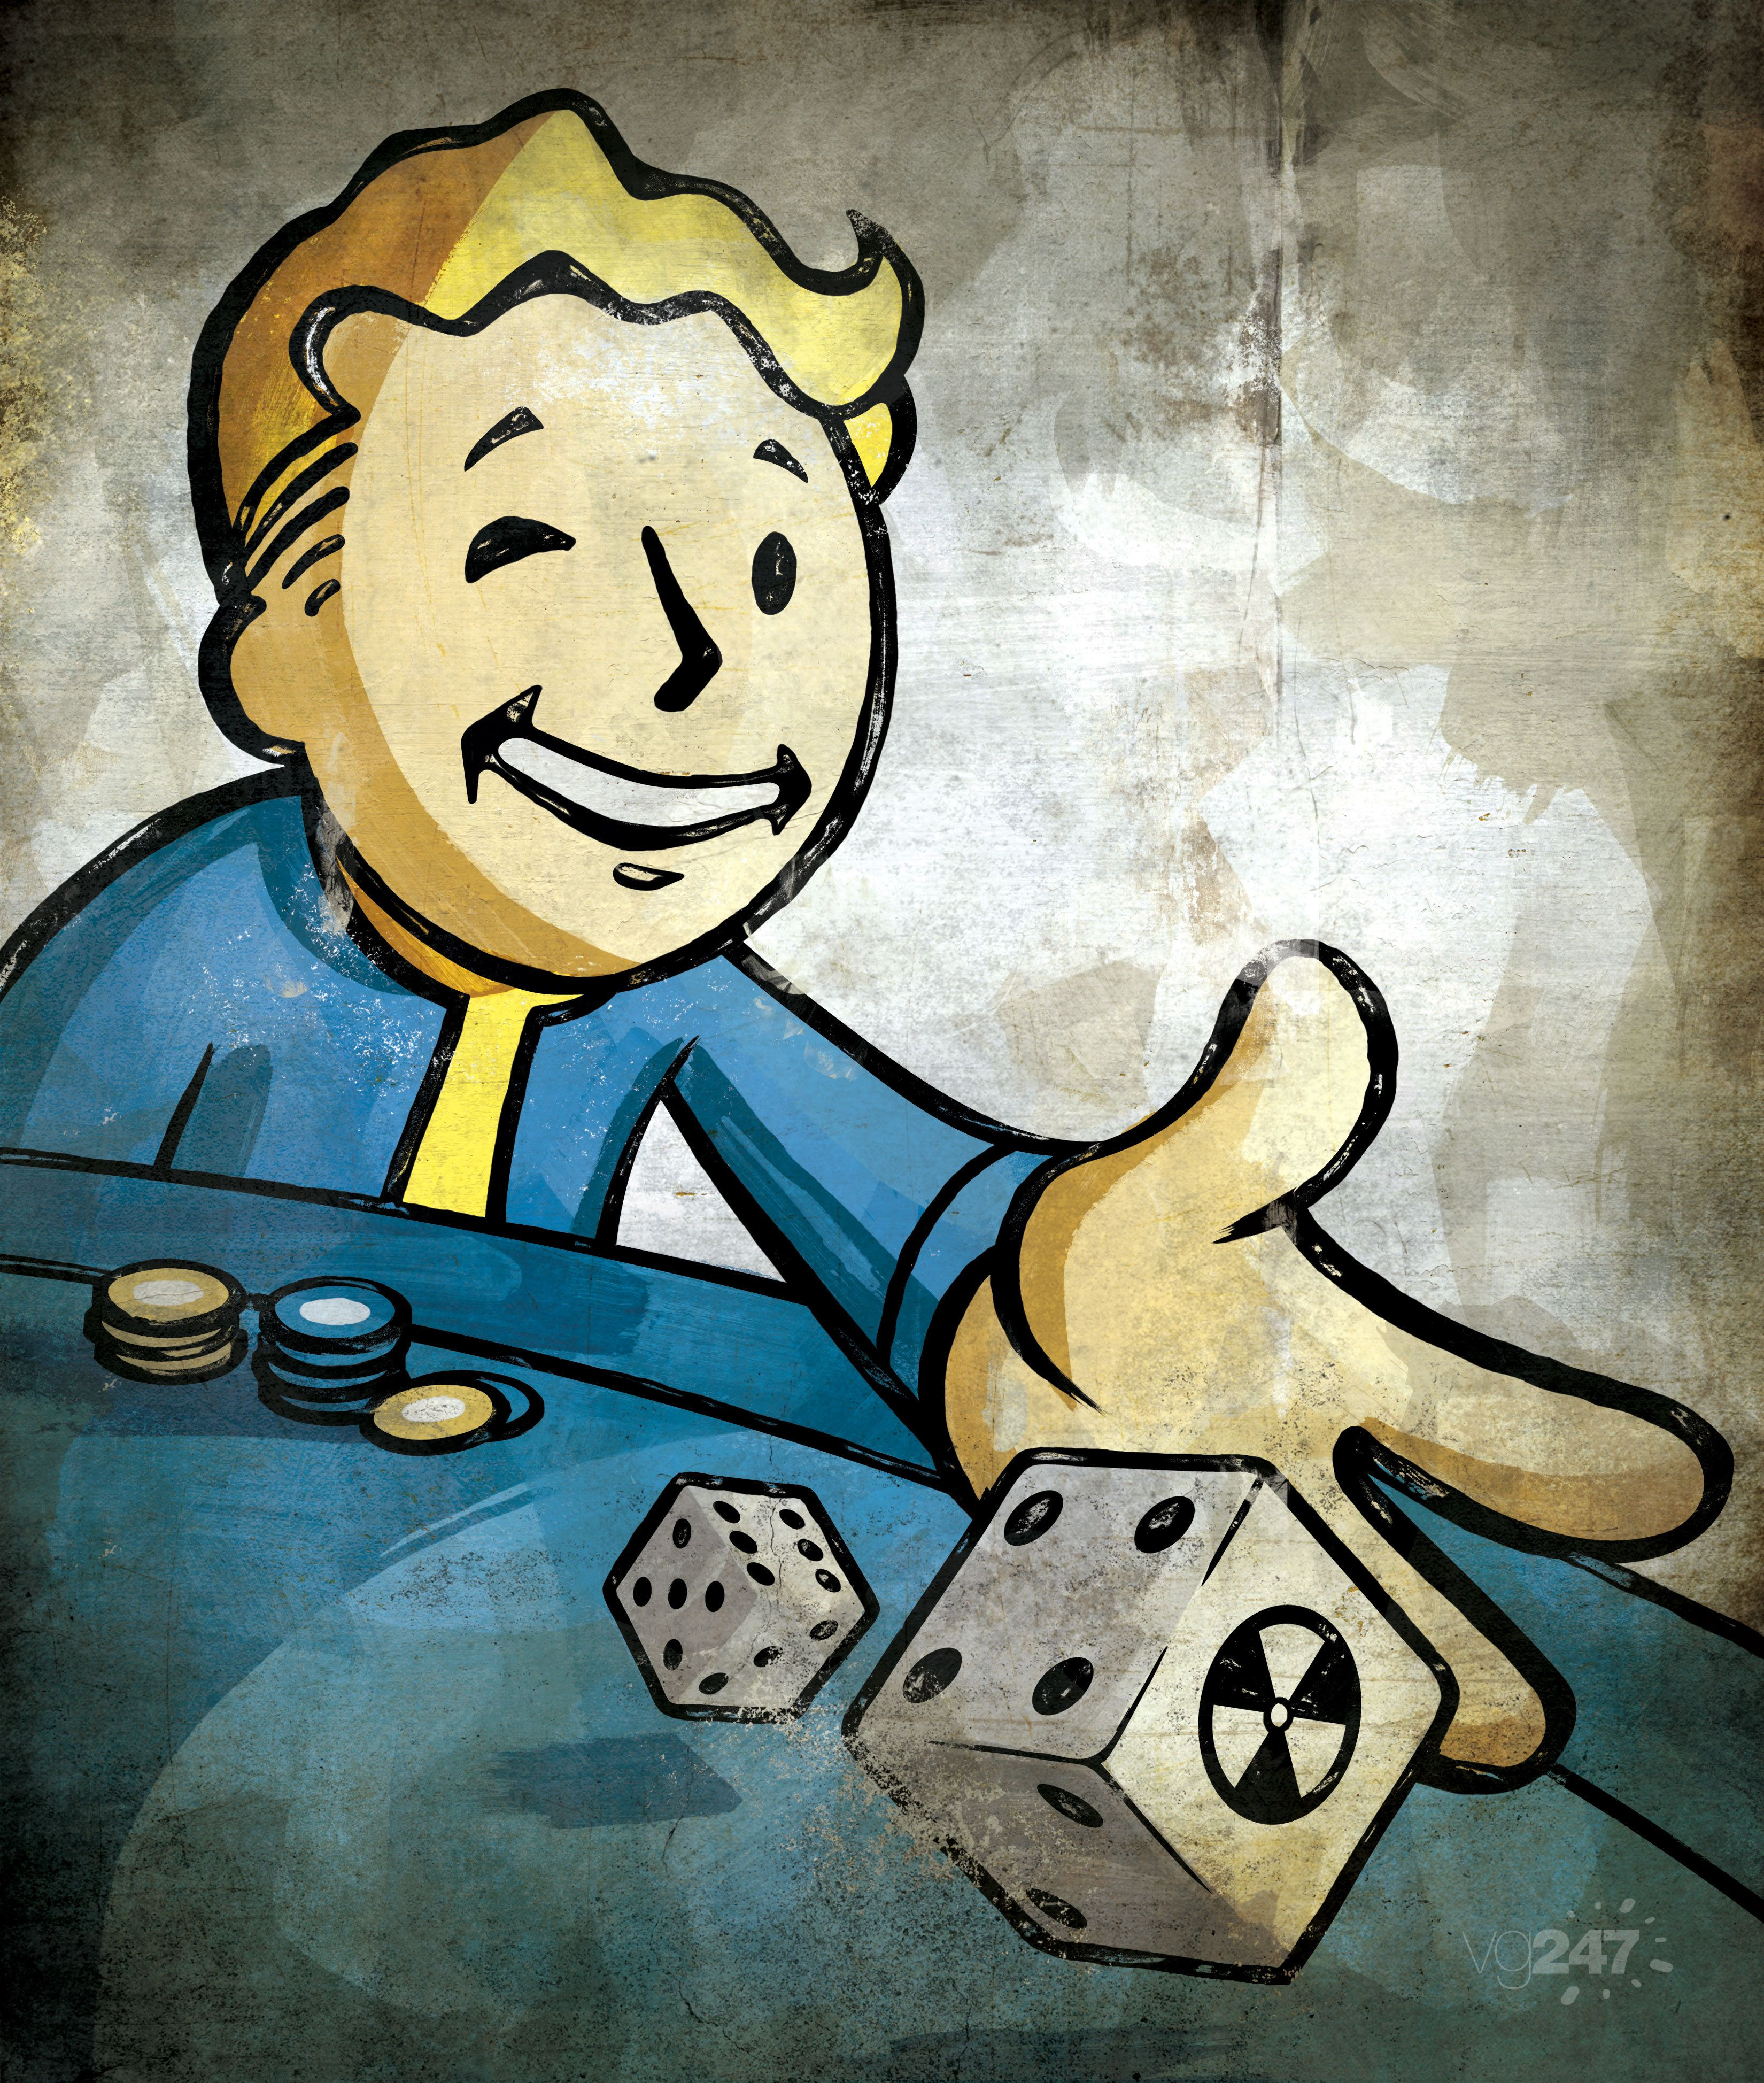 Best 25 fallout art ideas on pinterest fallout fallout for Fallout 4 canvas painting